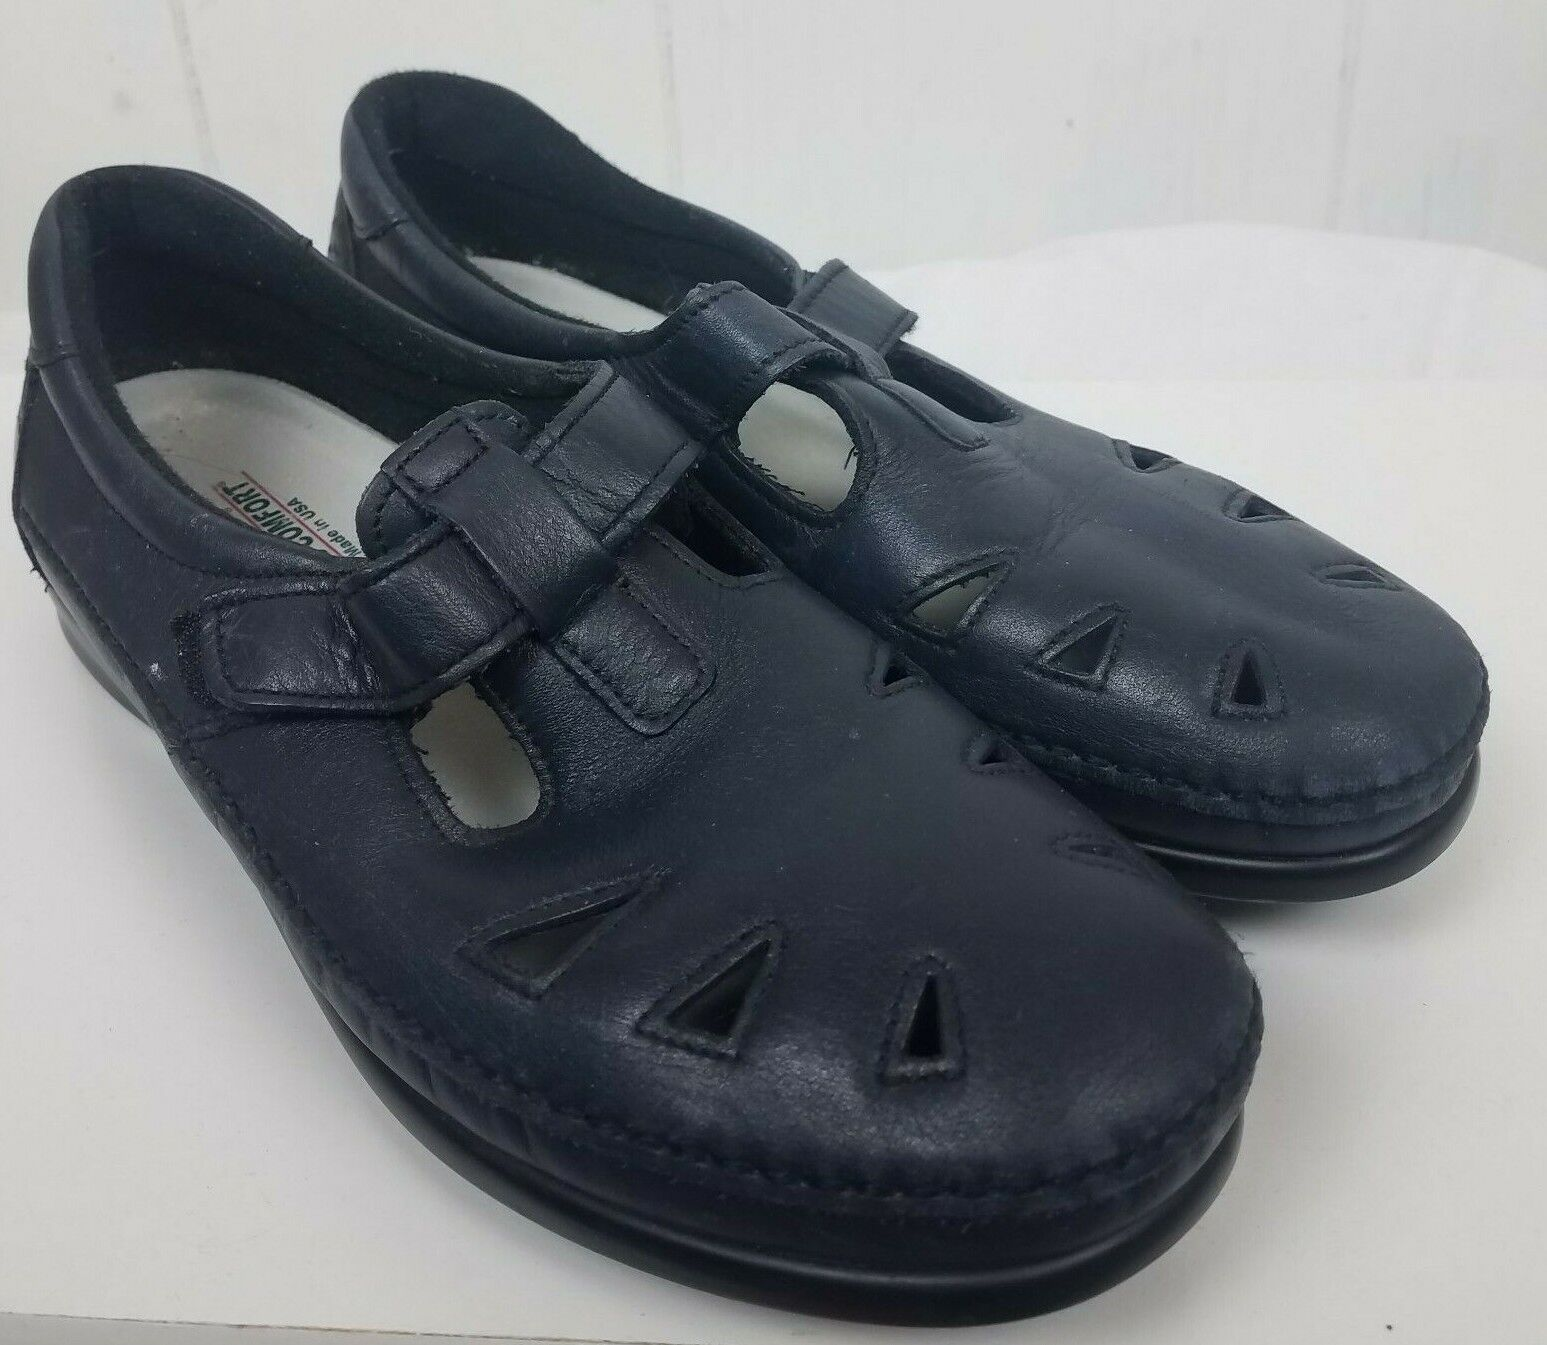 SAS Roamer Womens 10.5 M Navy bluee Leather Mary Jane Comfort Loafer shoes